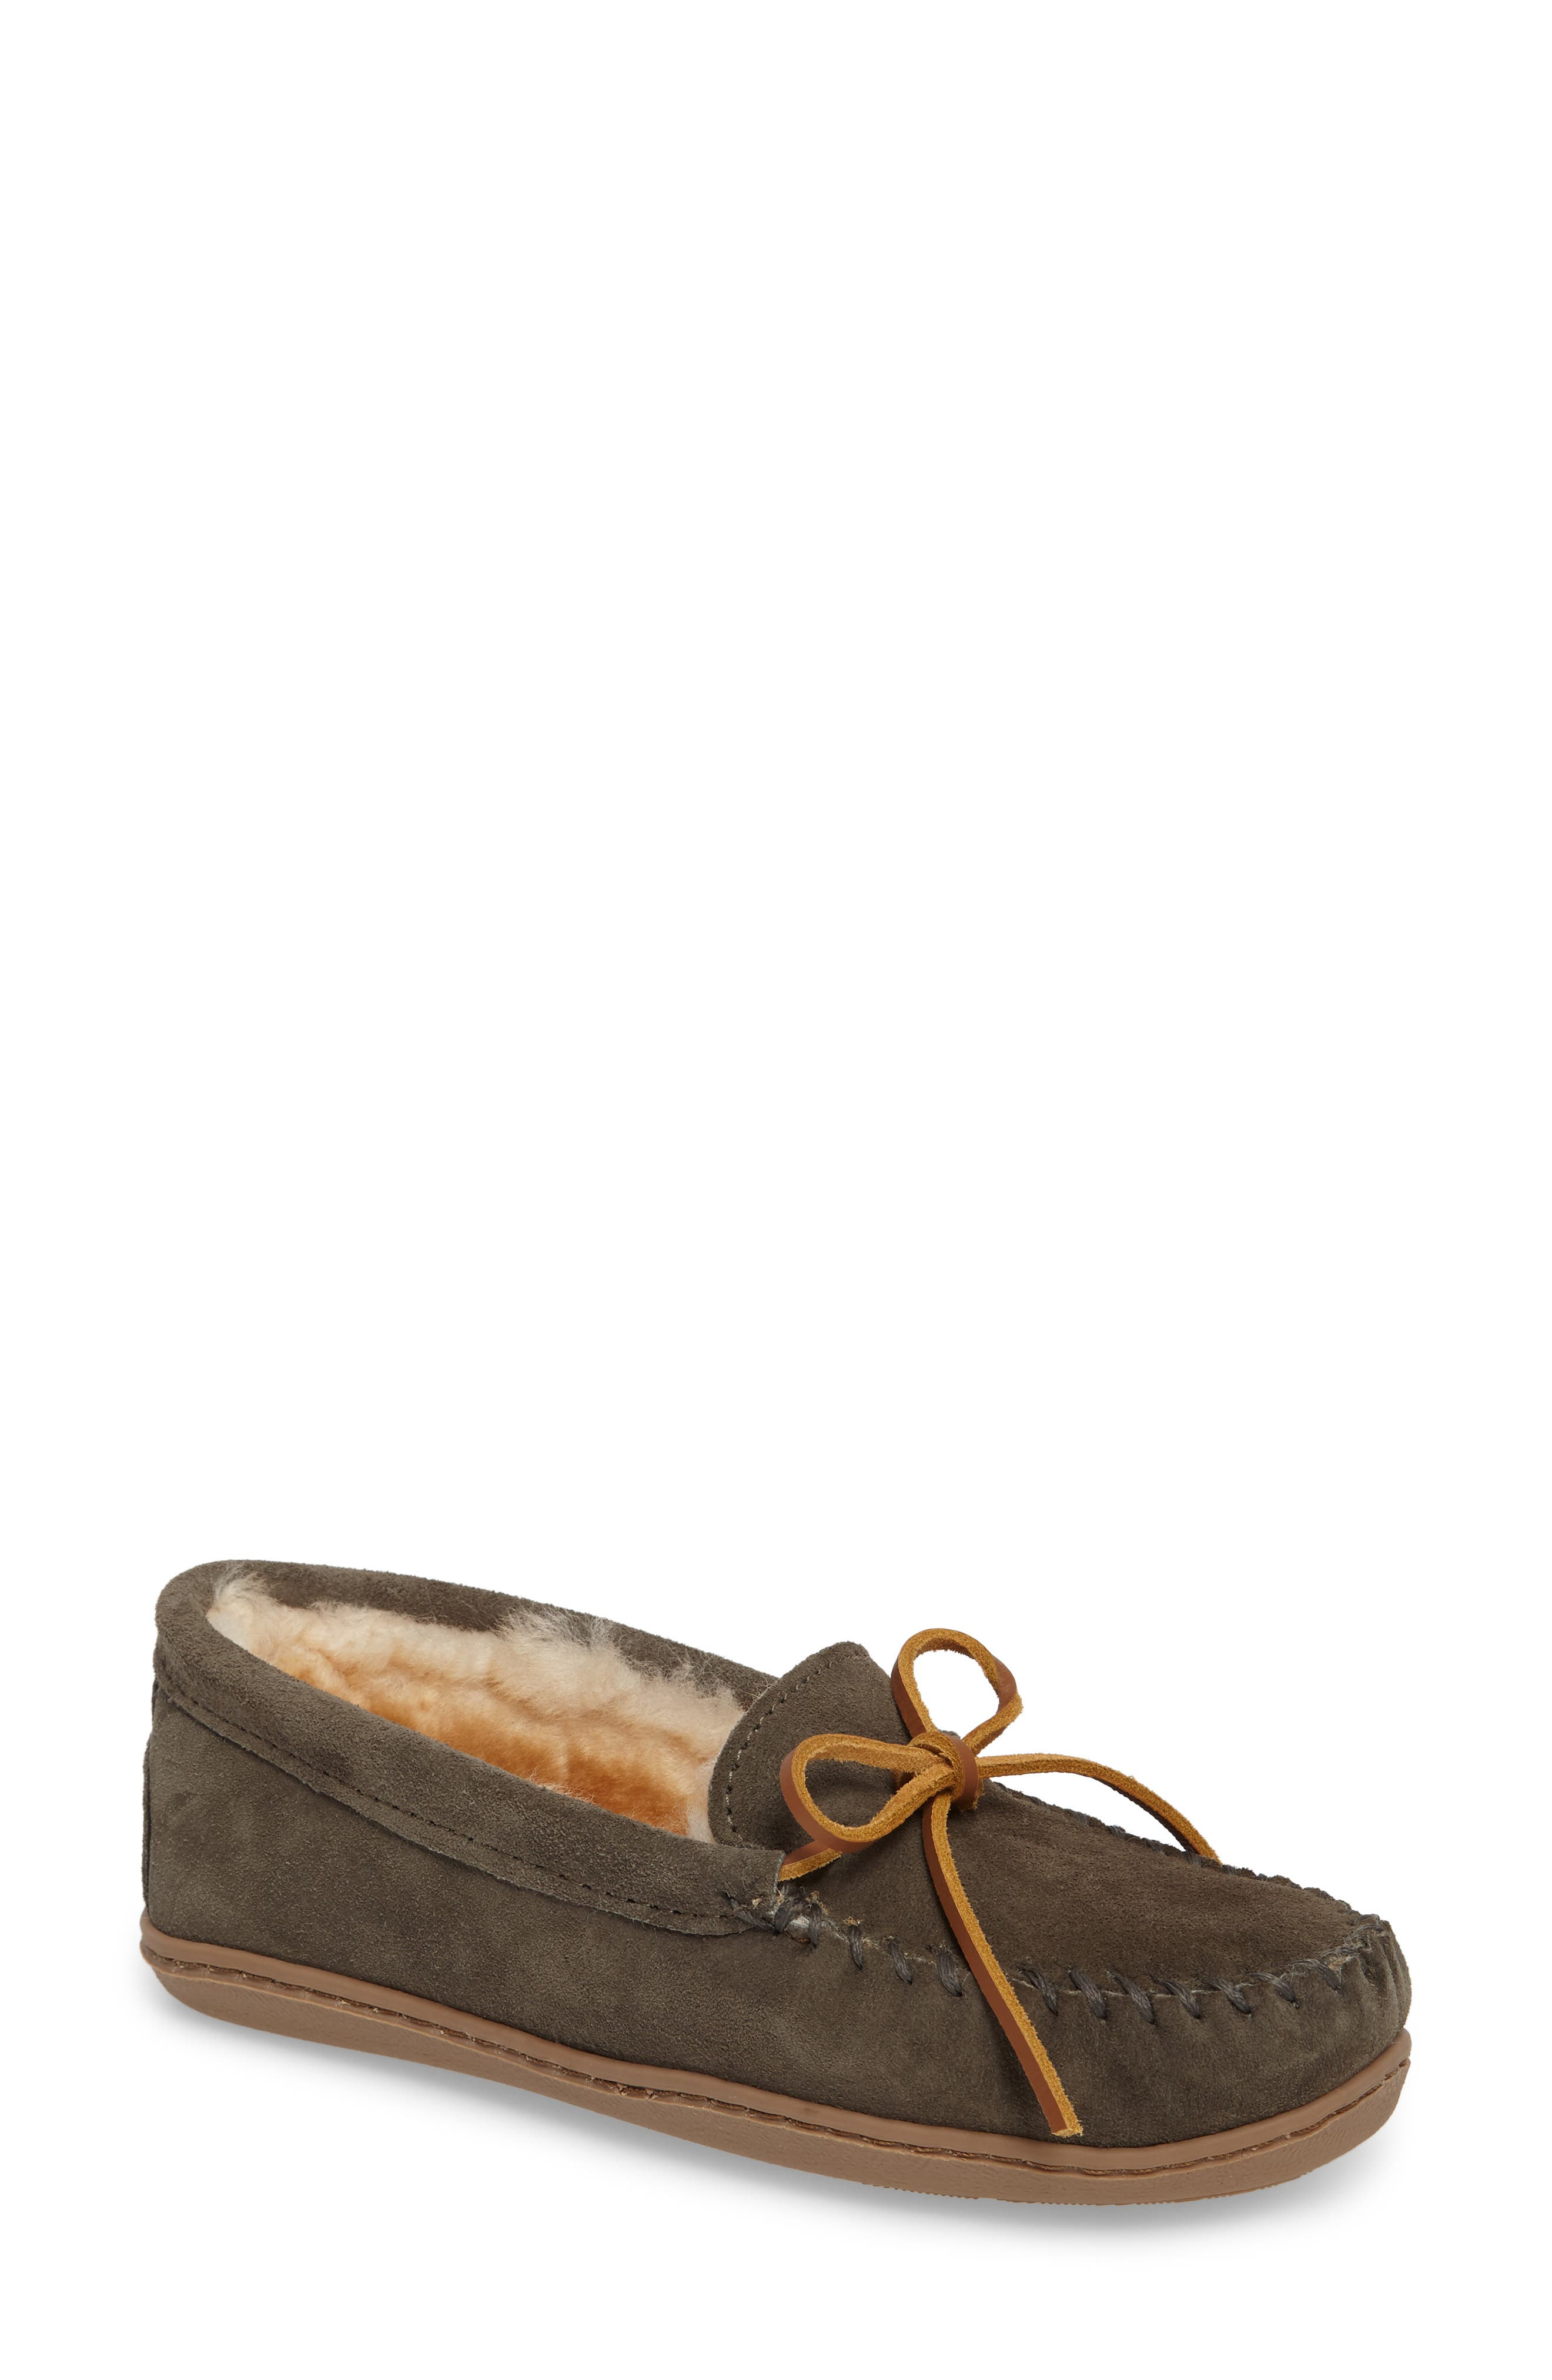 Minnetonka Genuine Shearling Hard Sole Moccasin Indoor/Outdoor Slipper (Women)